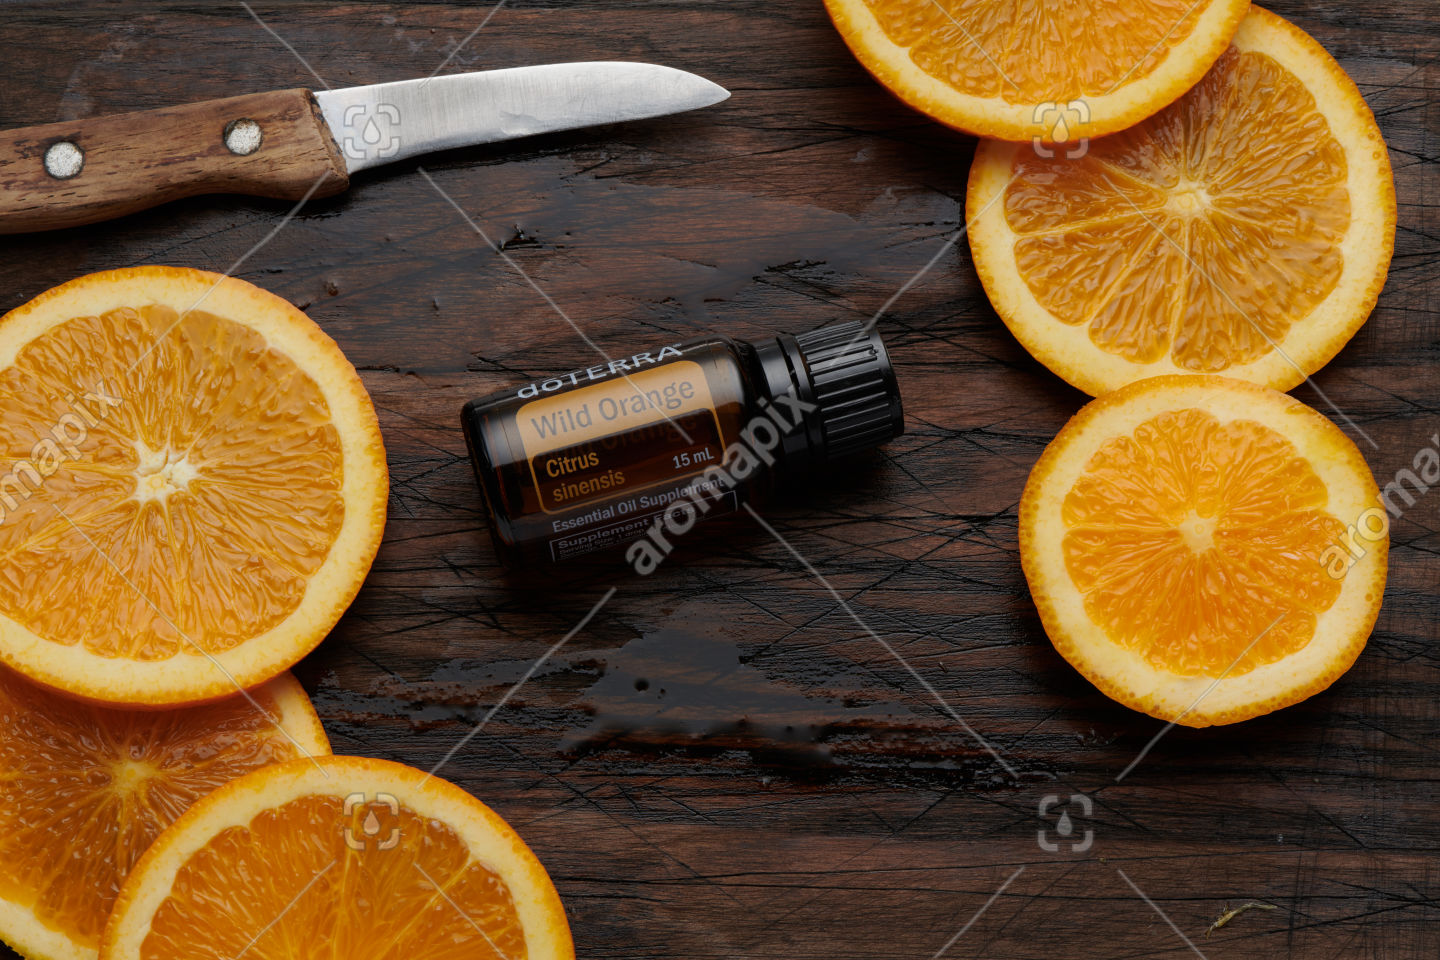 doTERRA Wild Orange product and slices on wooden board